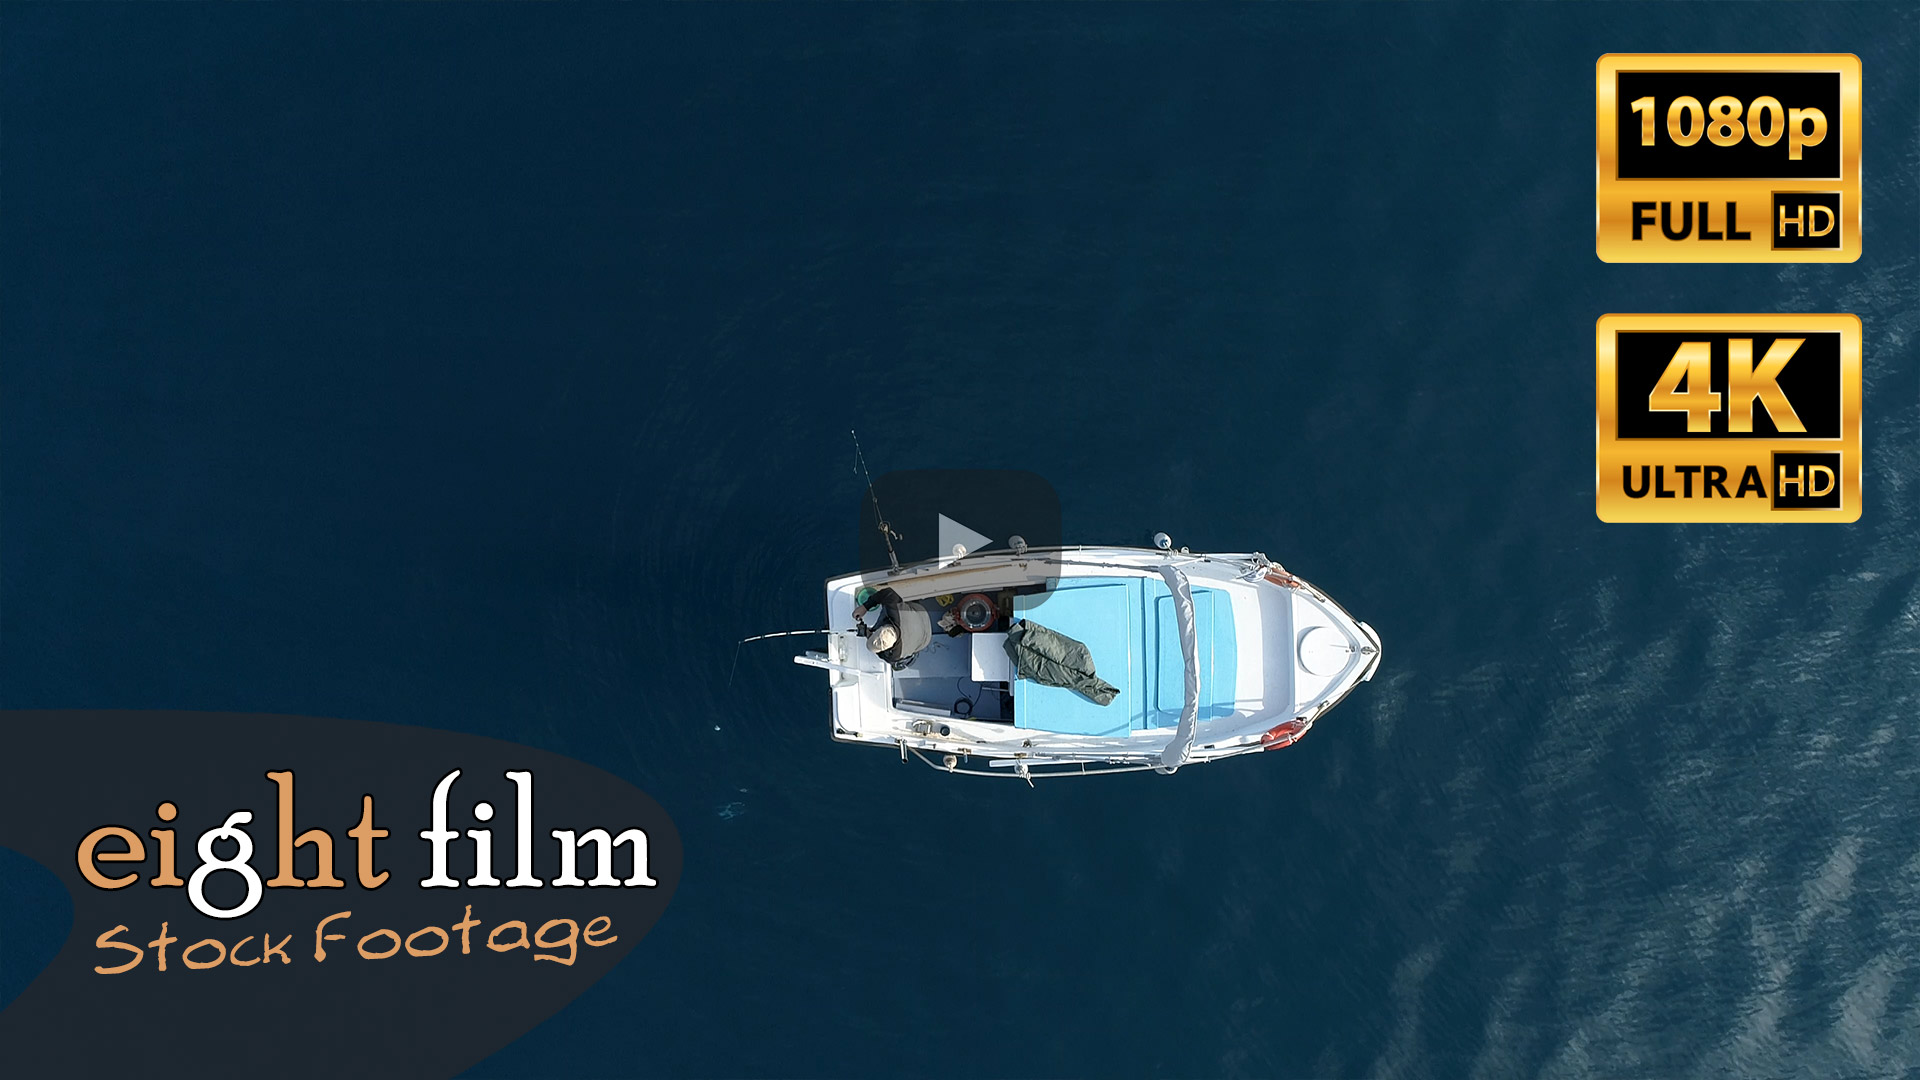 Aerial Footage. Fisherman catching a fish